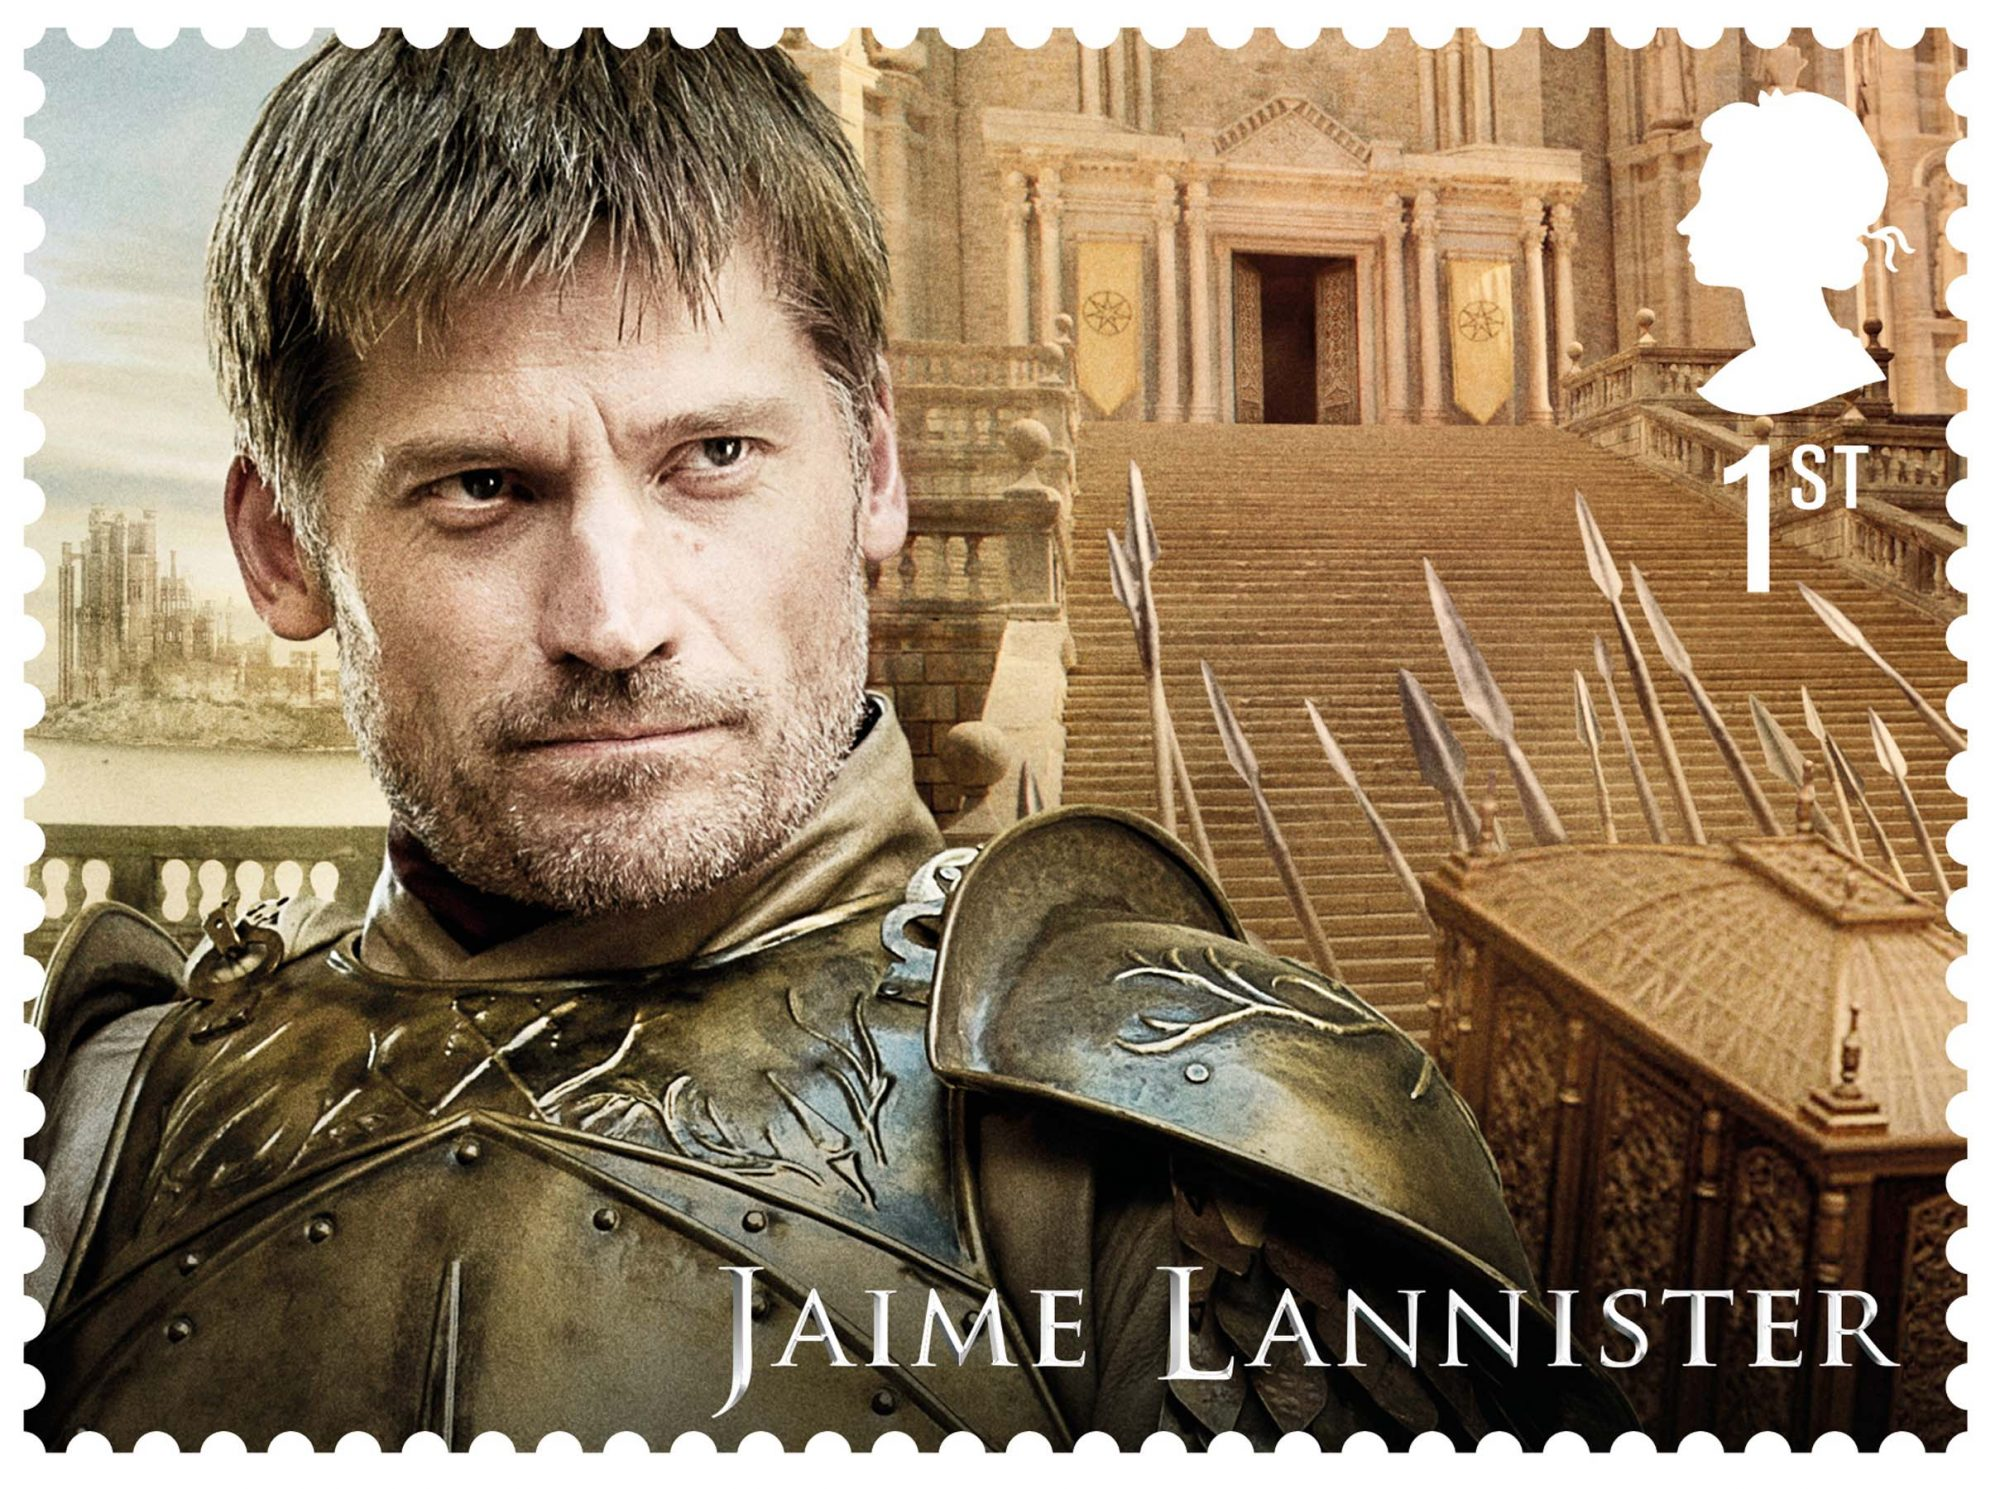 GoT Jamie Lannister stamp